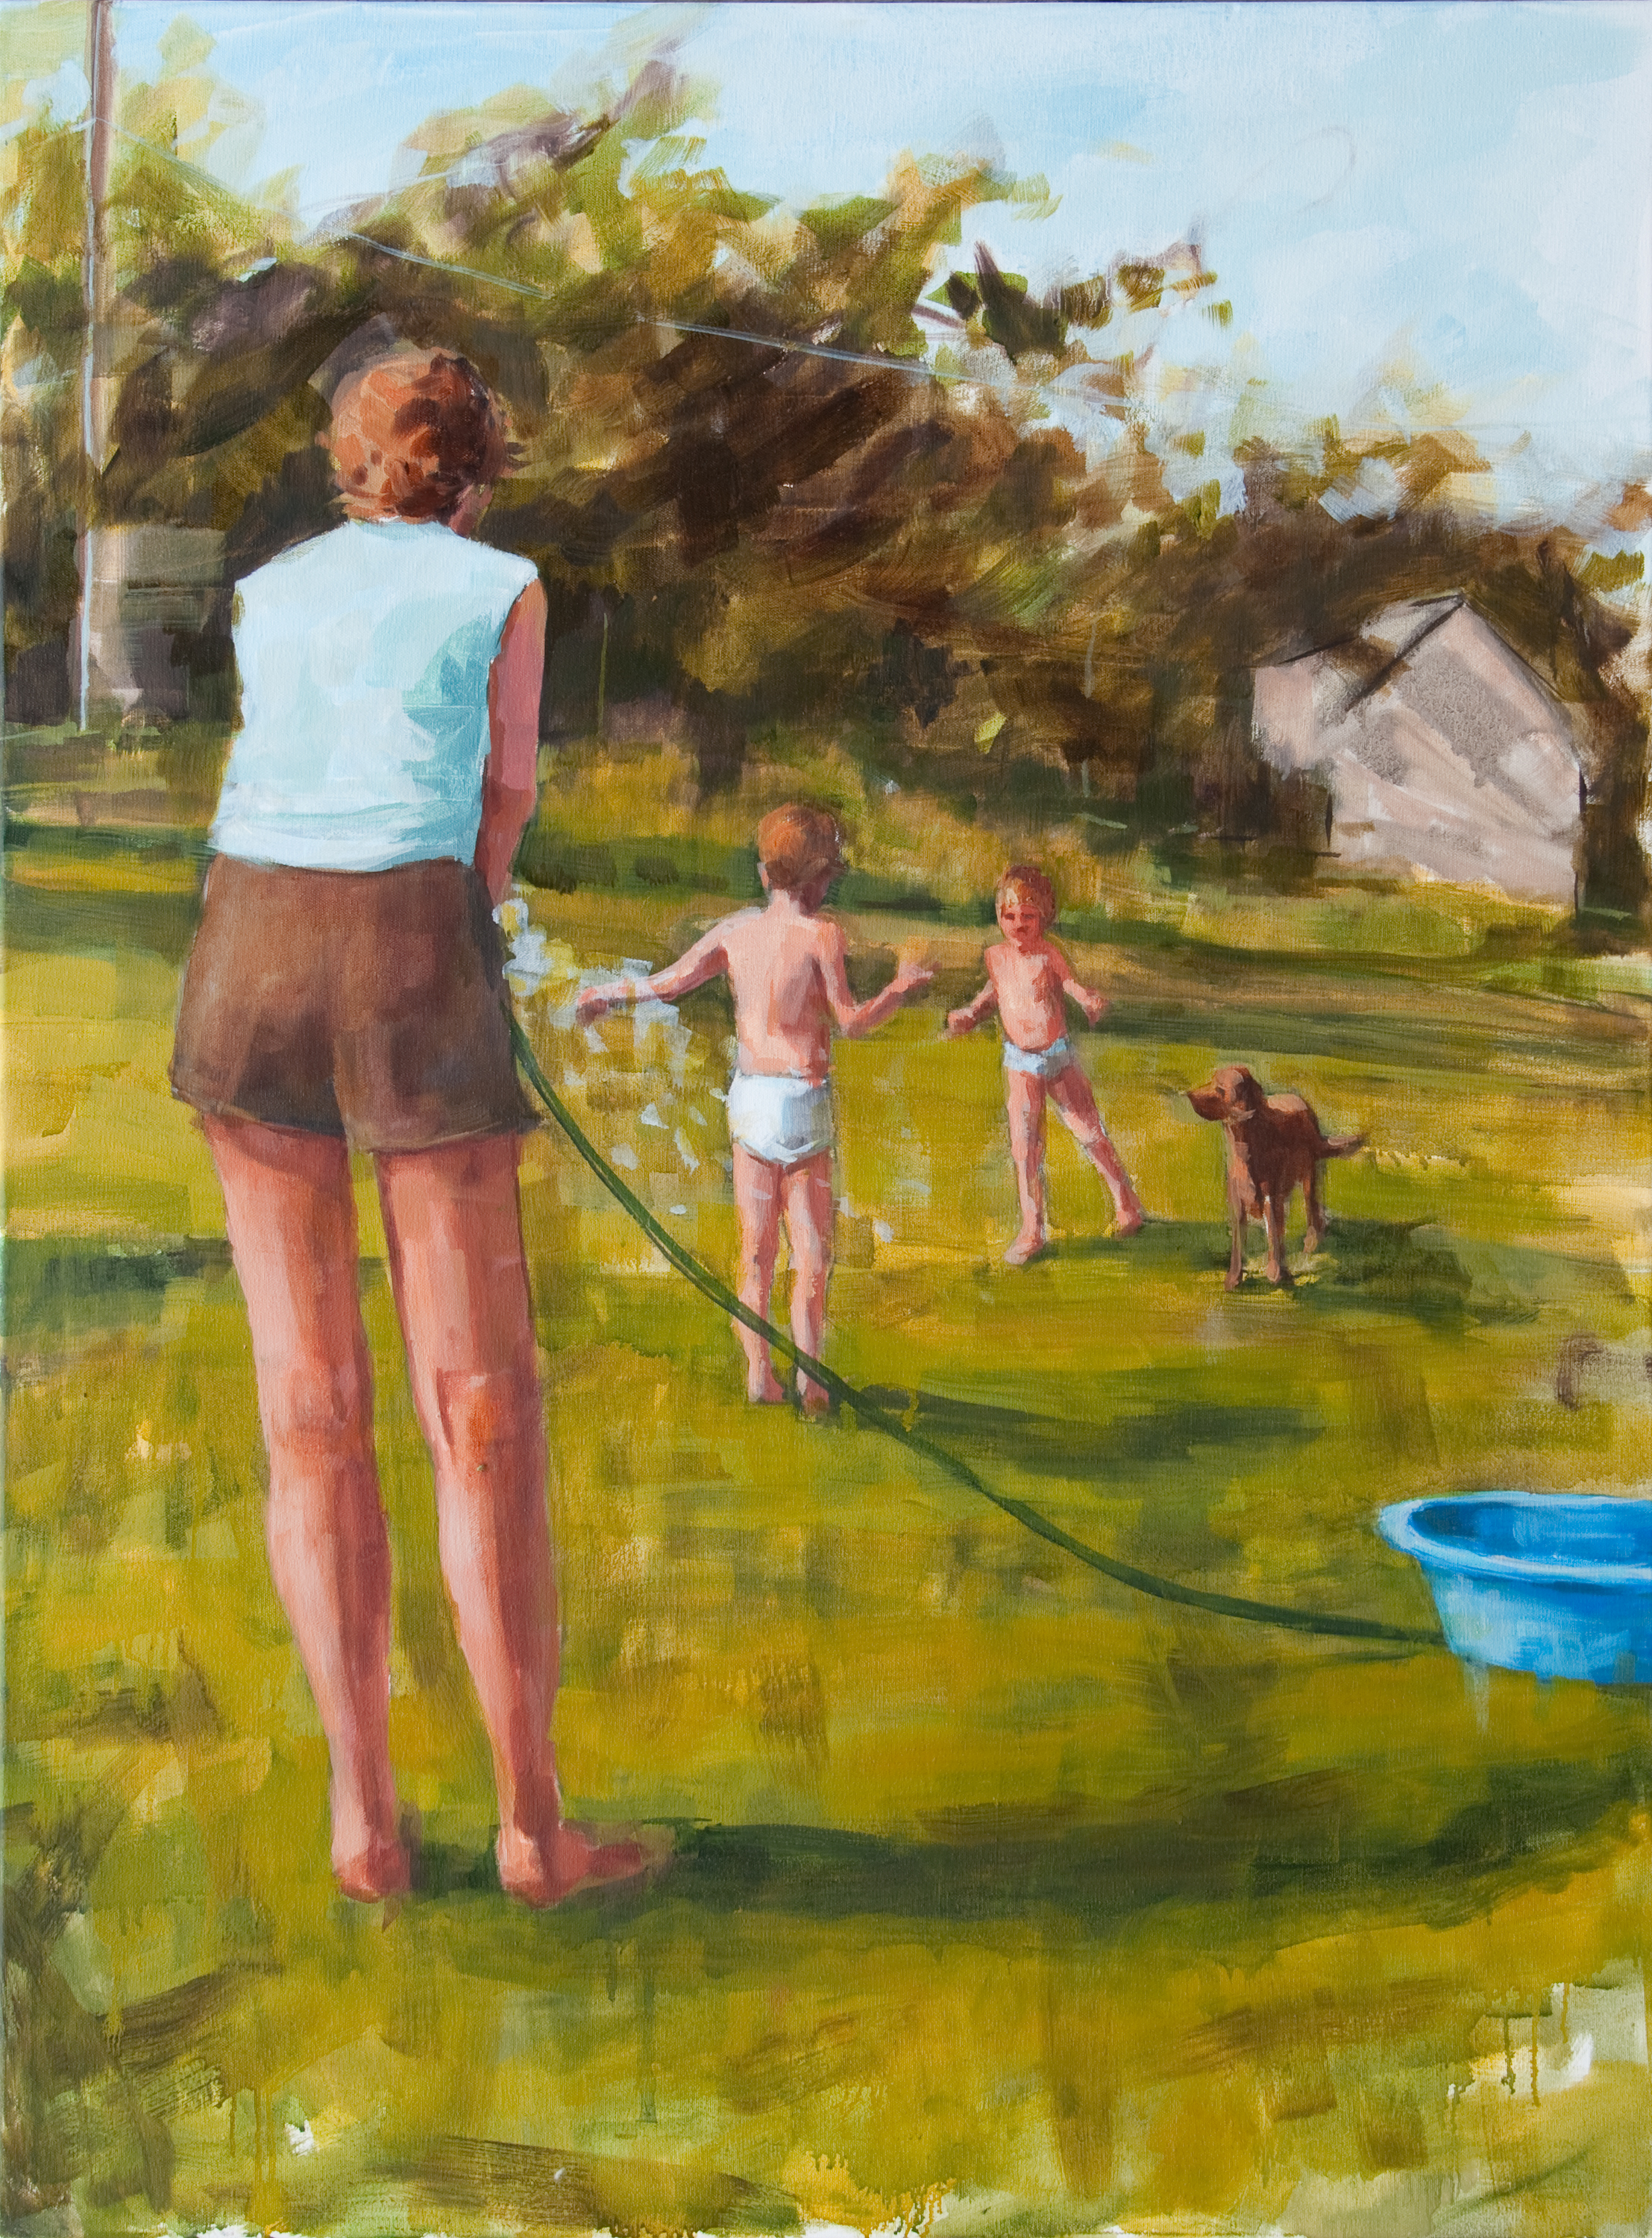 """Blue Kidde Pool, oil on canvas, 40"""" x 30"""", 2012, Private Collection"""